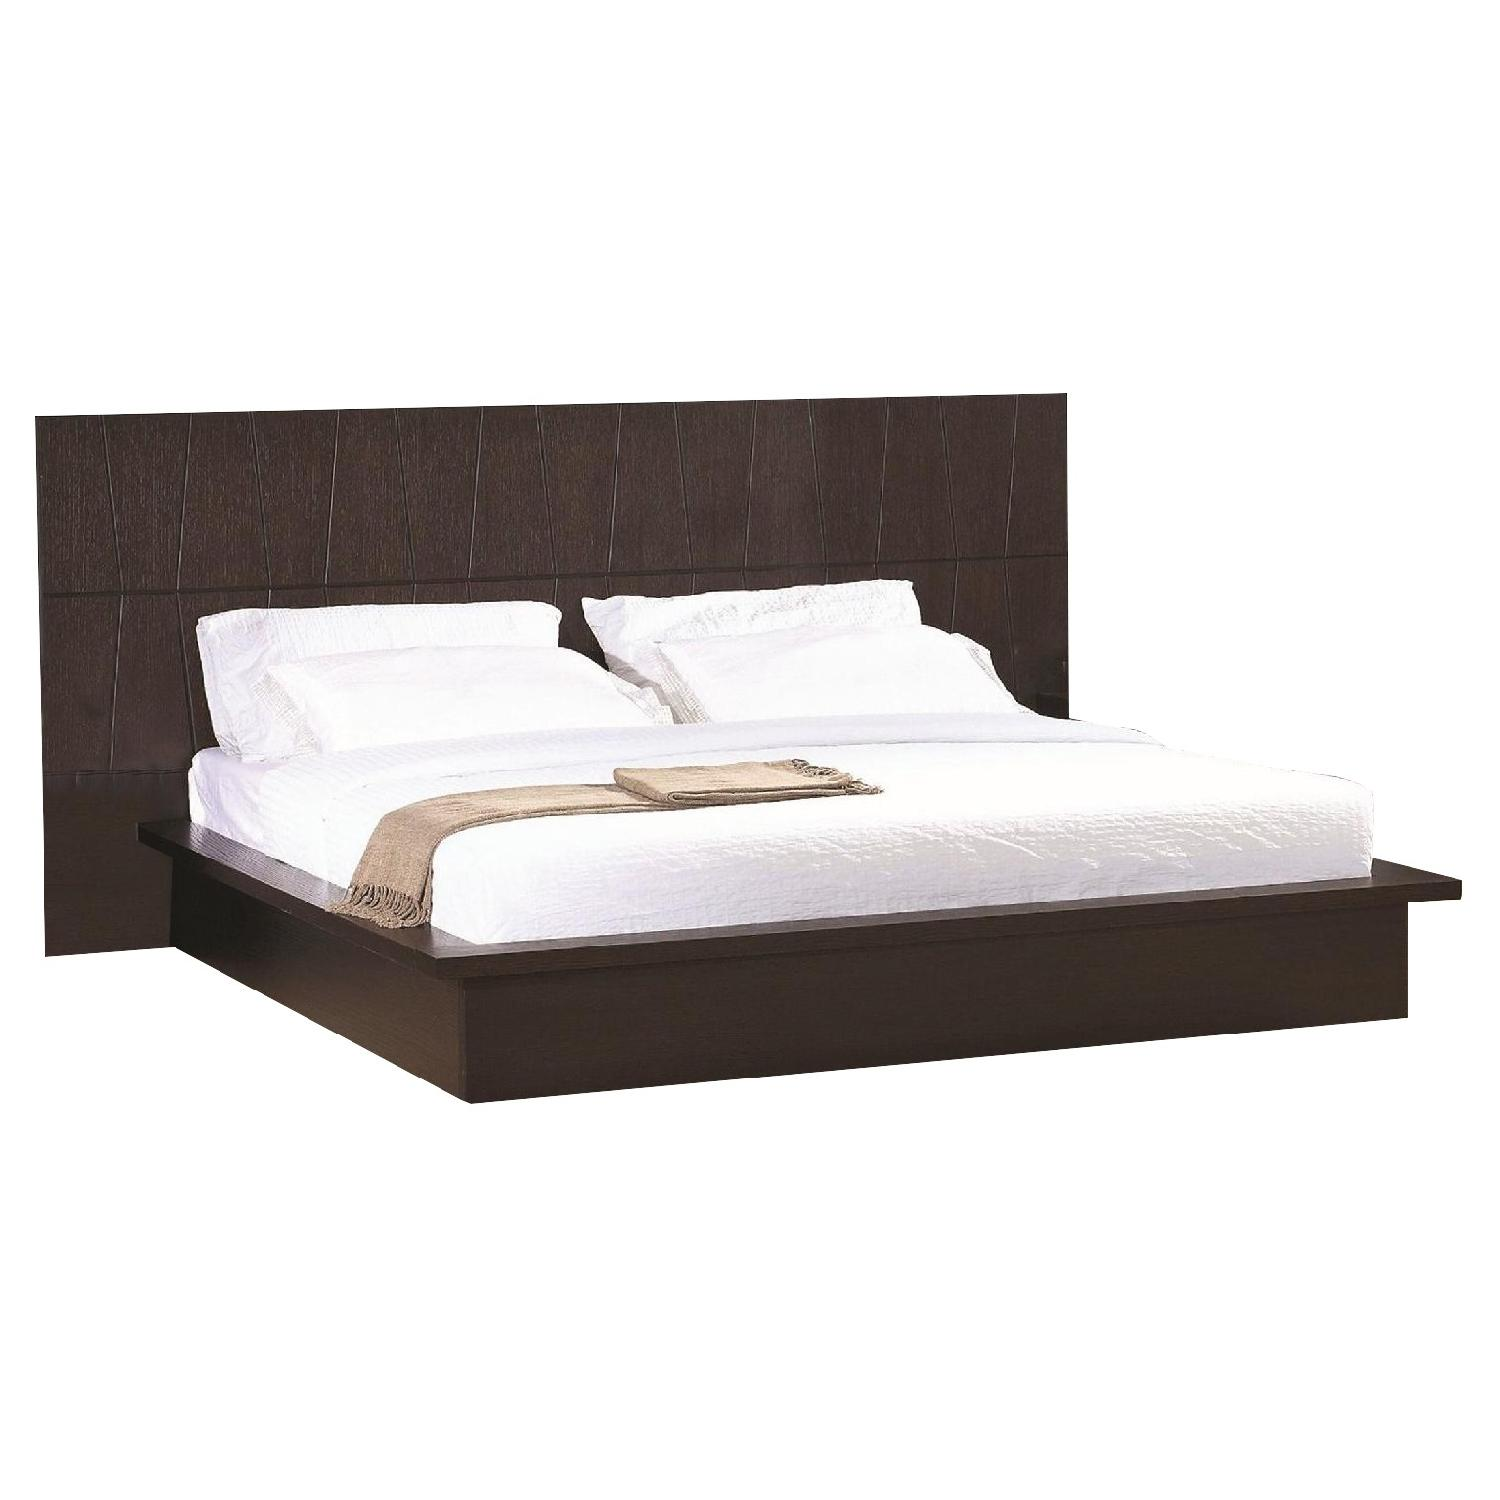 Queen Size Modern Platform Bed in Wenge Finish w/ Etched Diamond Motif Headboard